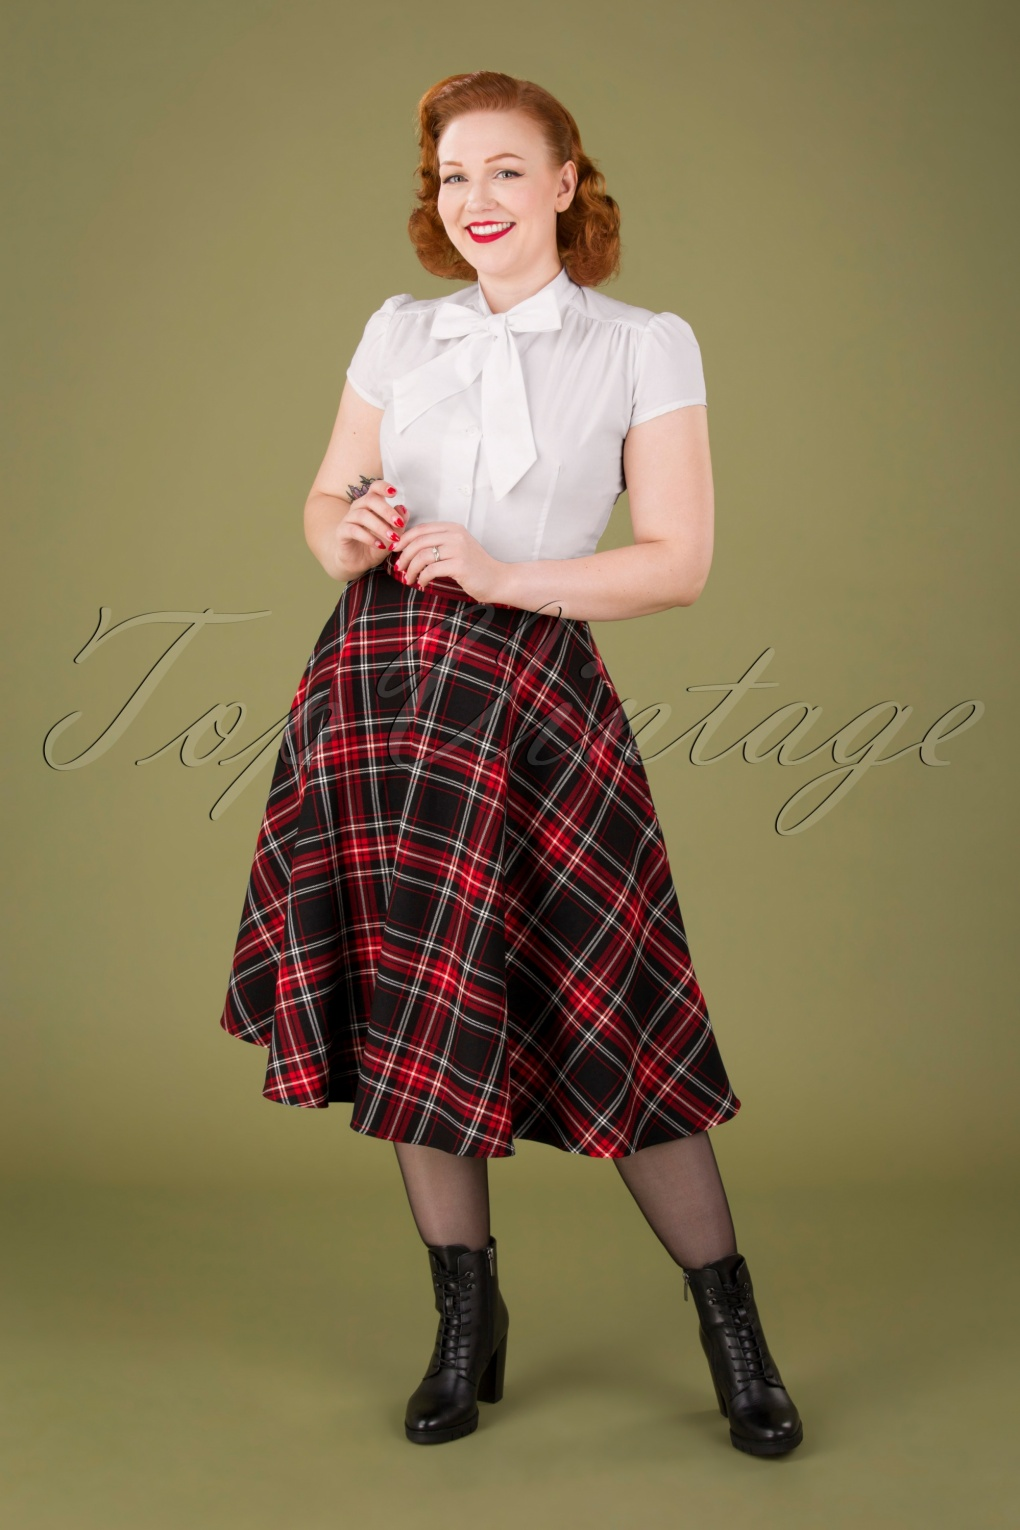 1940s Style Skirts- Vintage High Waisted Skirts 50s Islay Tartan Swing Skirt in Black and Red £48.81 AT vintagedancer.com